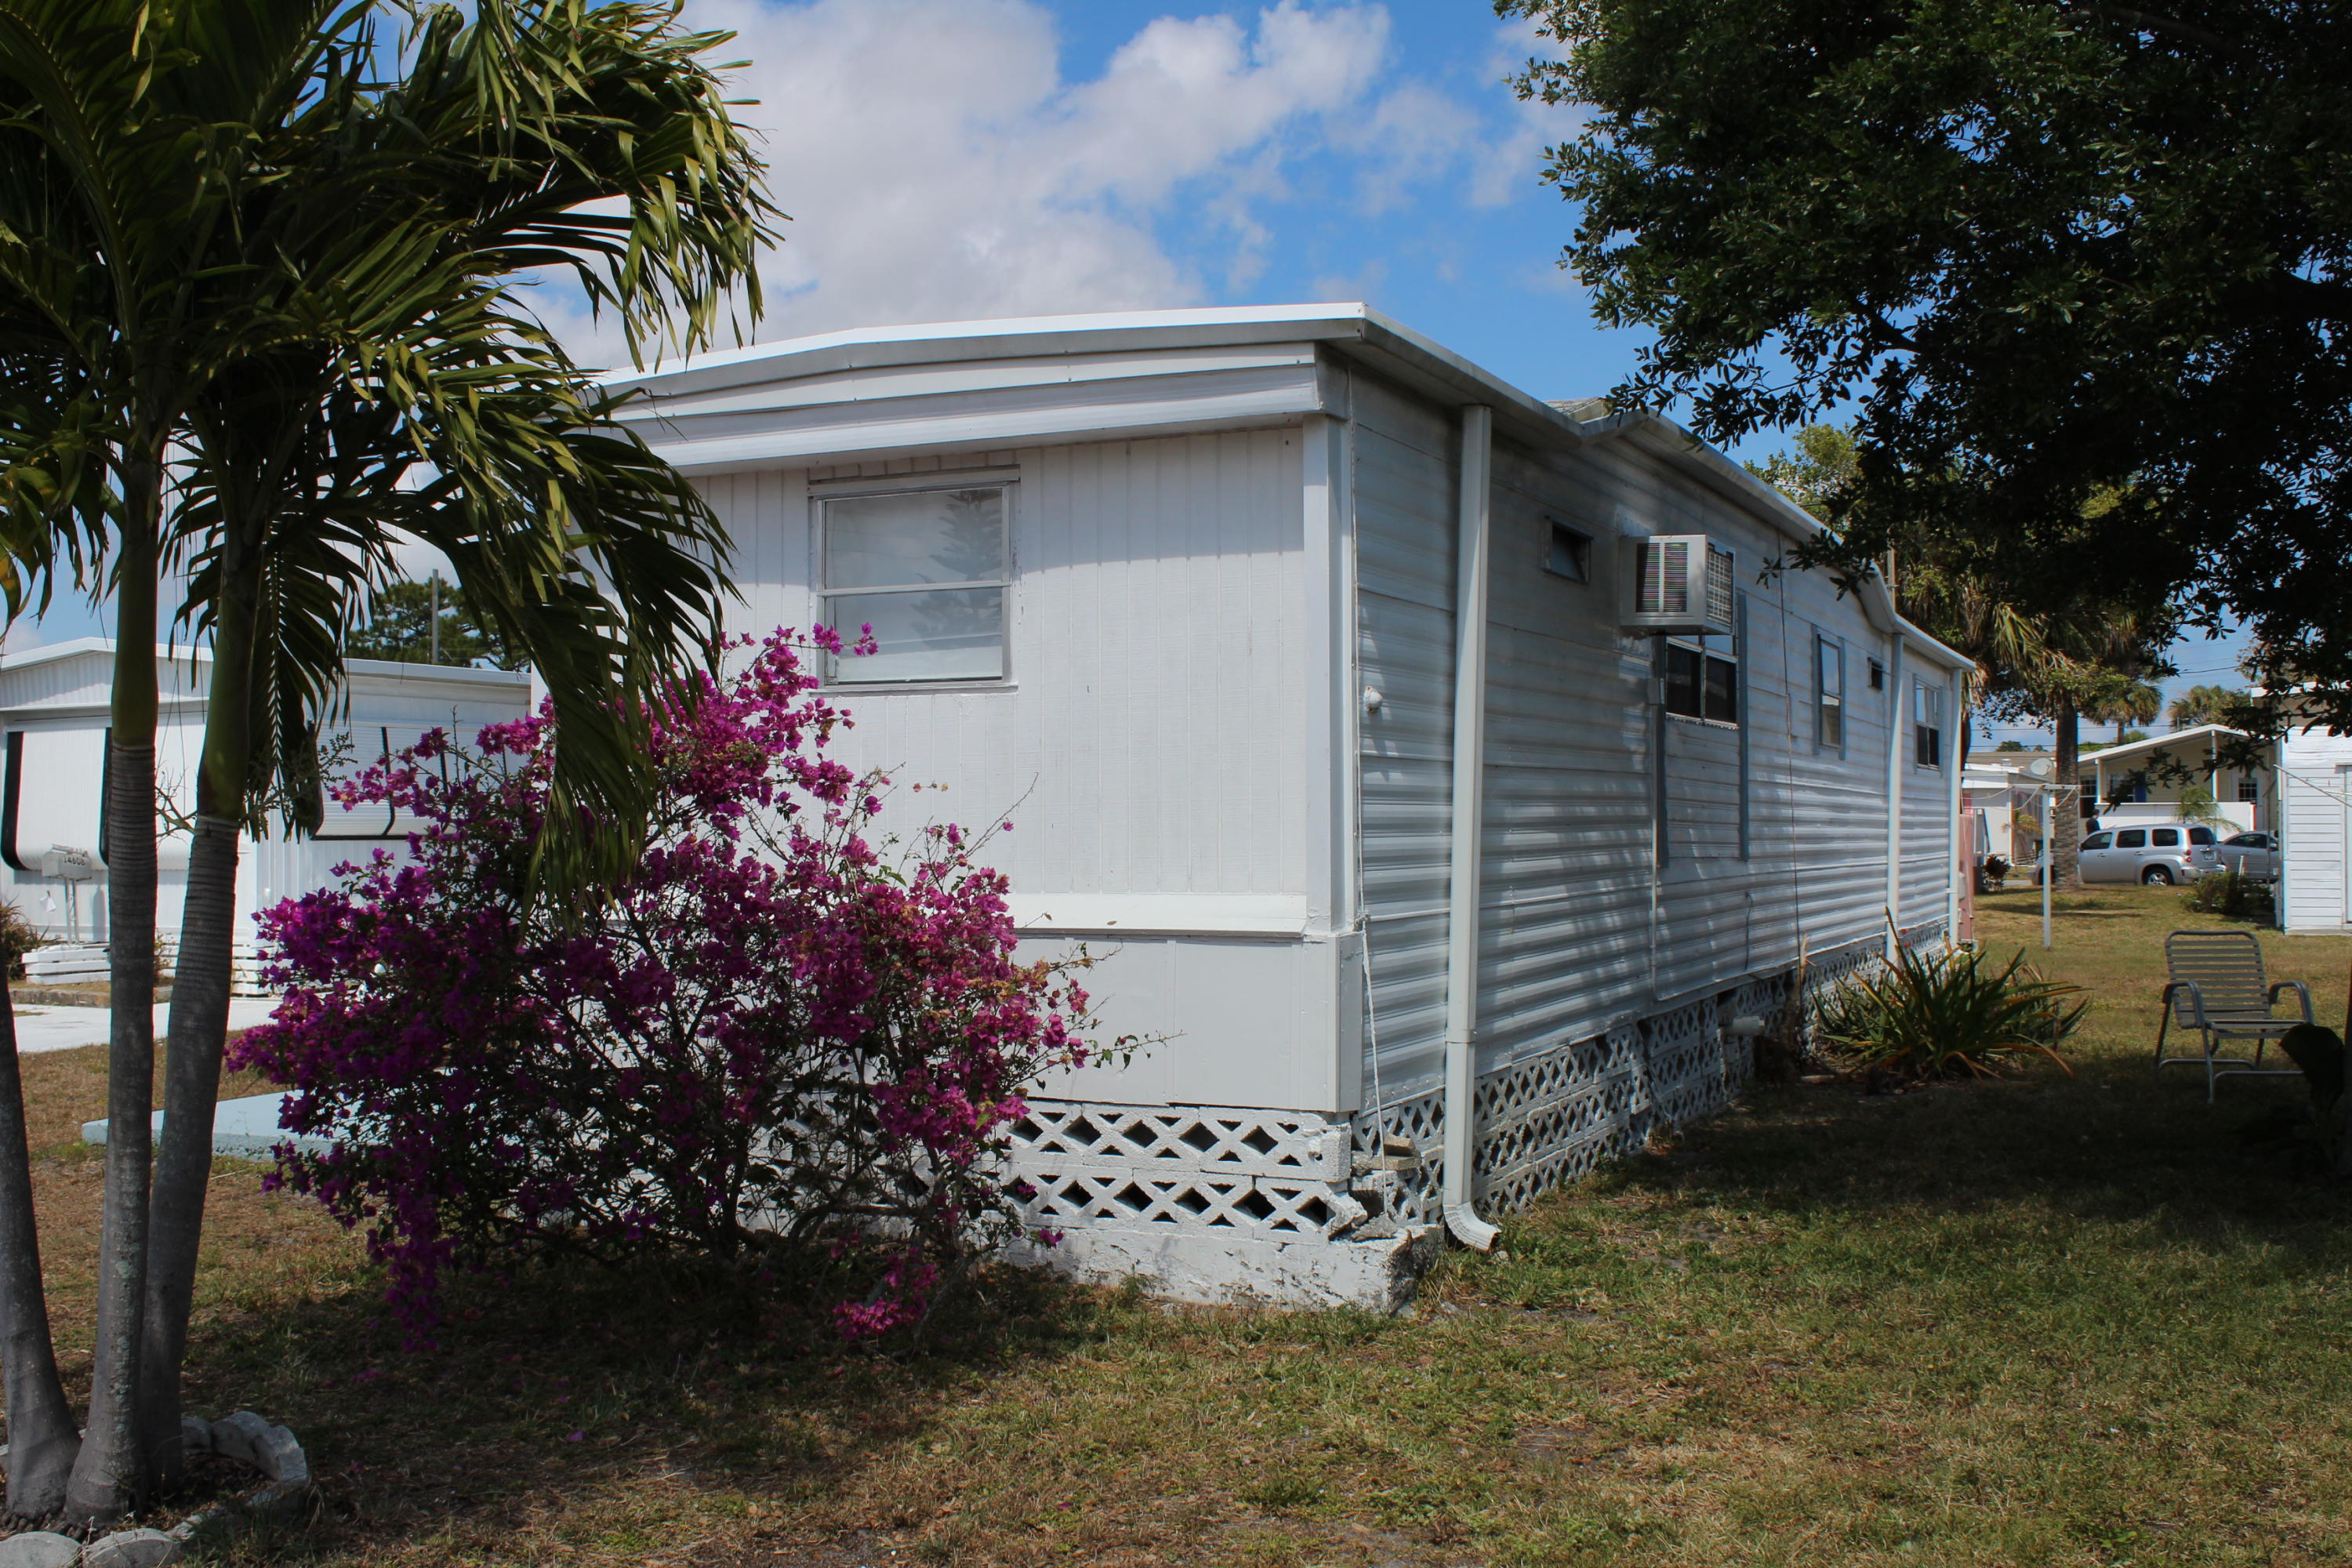 14616 Glenview Drive, Delray Beach, Florida 33445, 2 Bedrooms Bedrooms, ,1.1 BathroomsBathrooms,Mobile/manufactured,For Sale,Glenview,RX-10417621